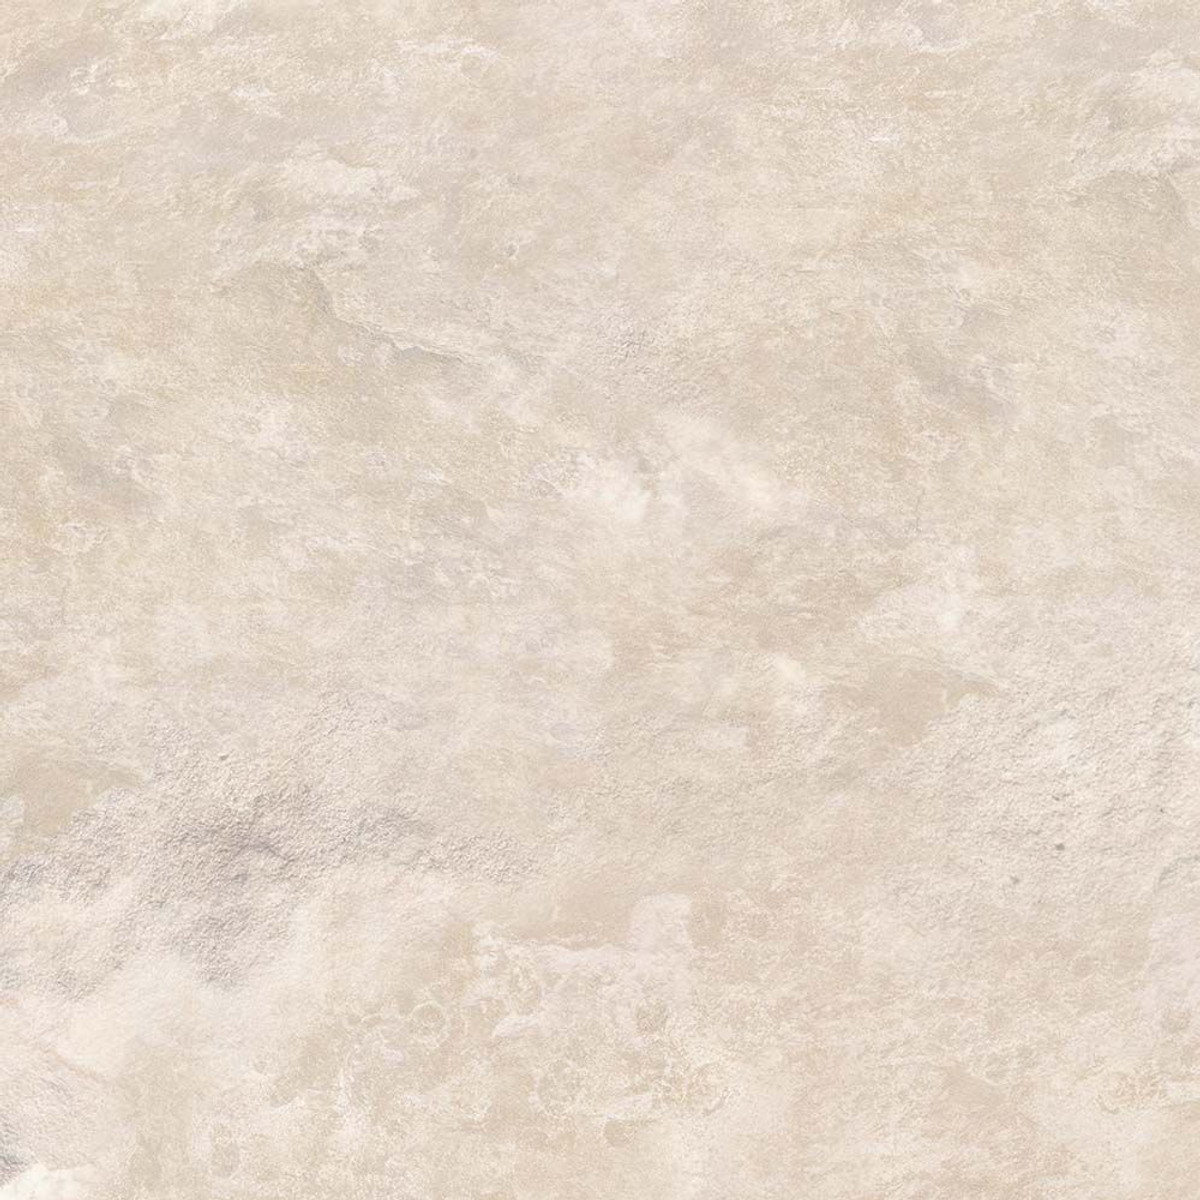 Perfection floor tile natural stone tile fieldstone 20 x 20 x 5mm perfection floor tile natural stone fieldstone dailygadgetfo Choice Image